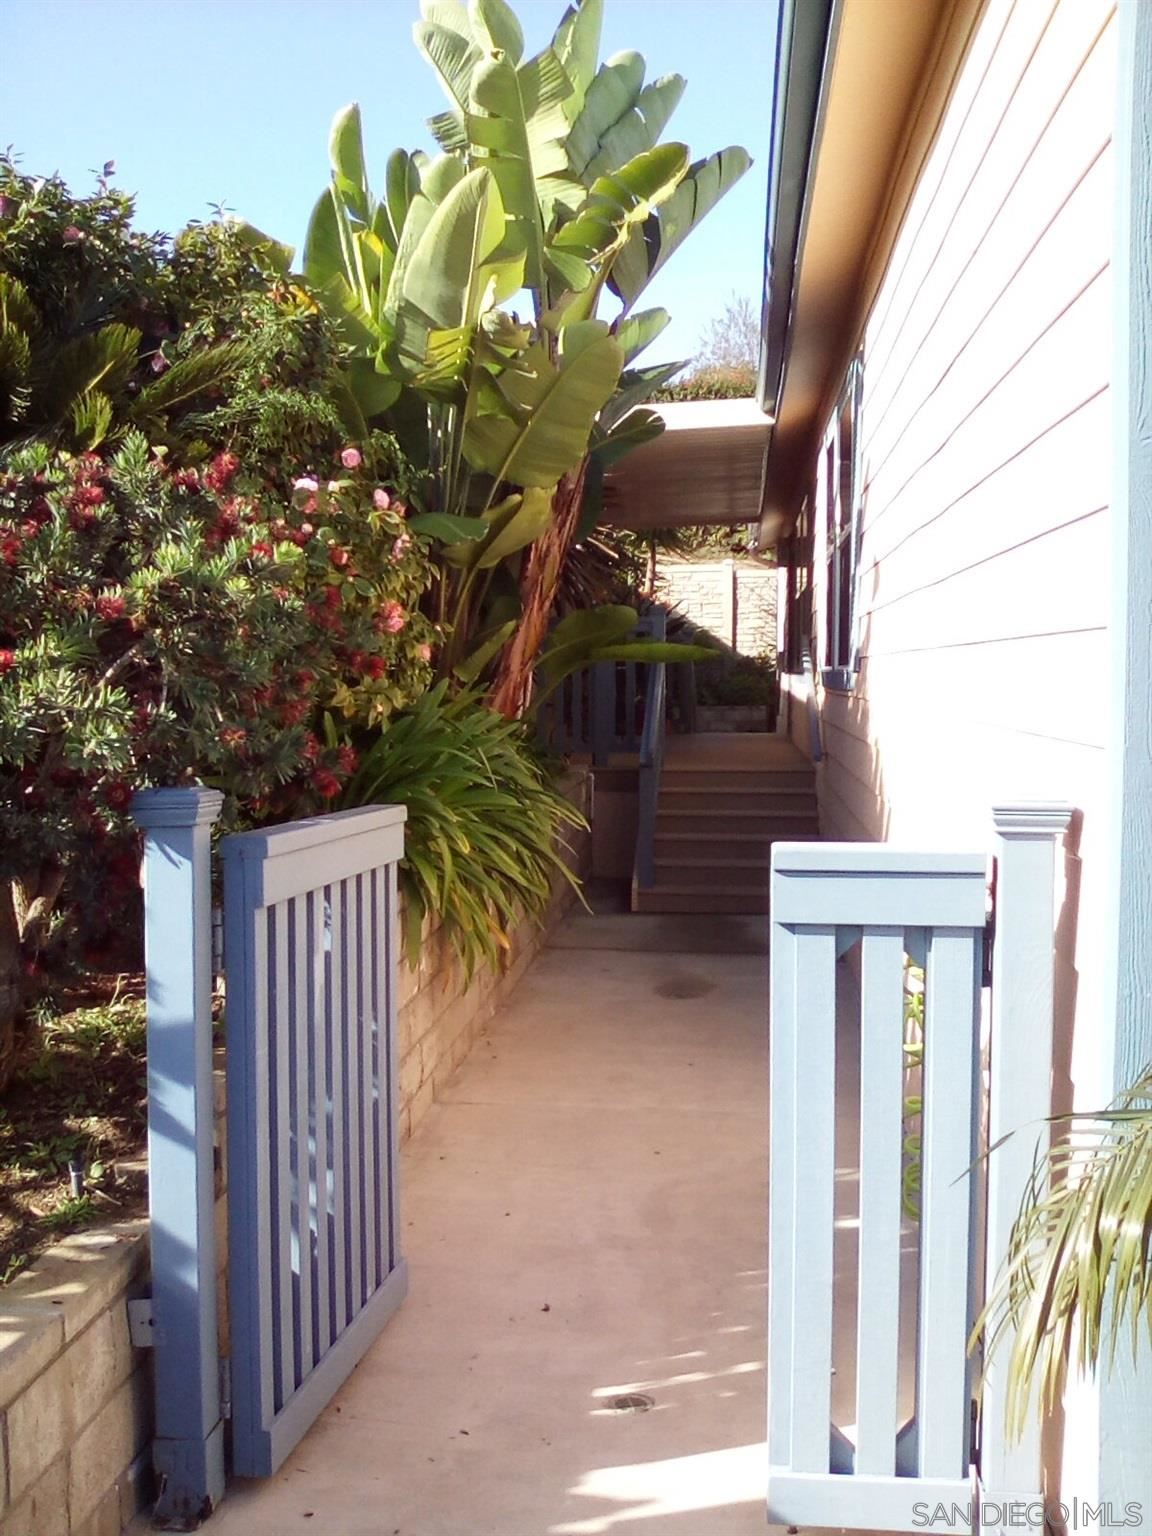 Photo of 444 N N El Camino Real #SPC 124, Encinitas, CA 92024 (MLS # 200054940)